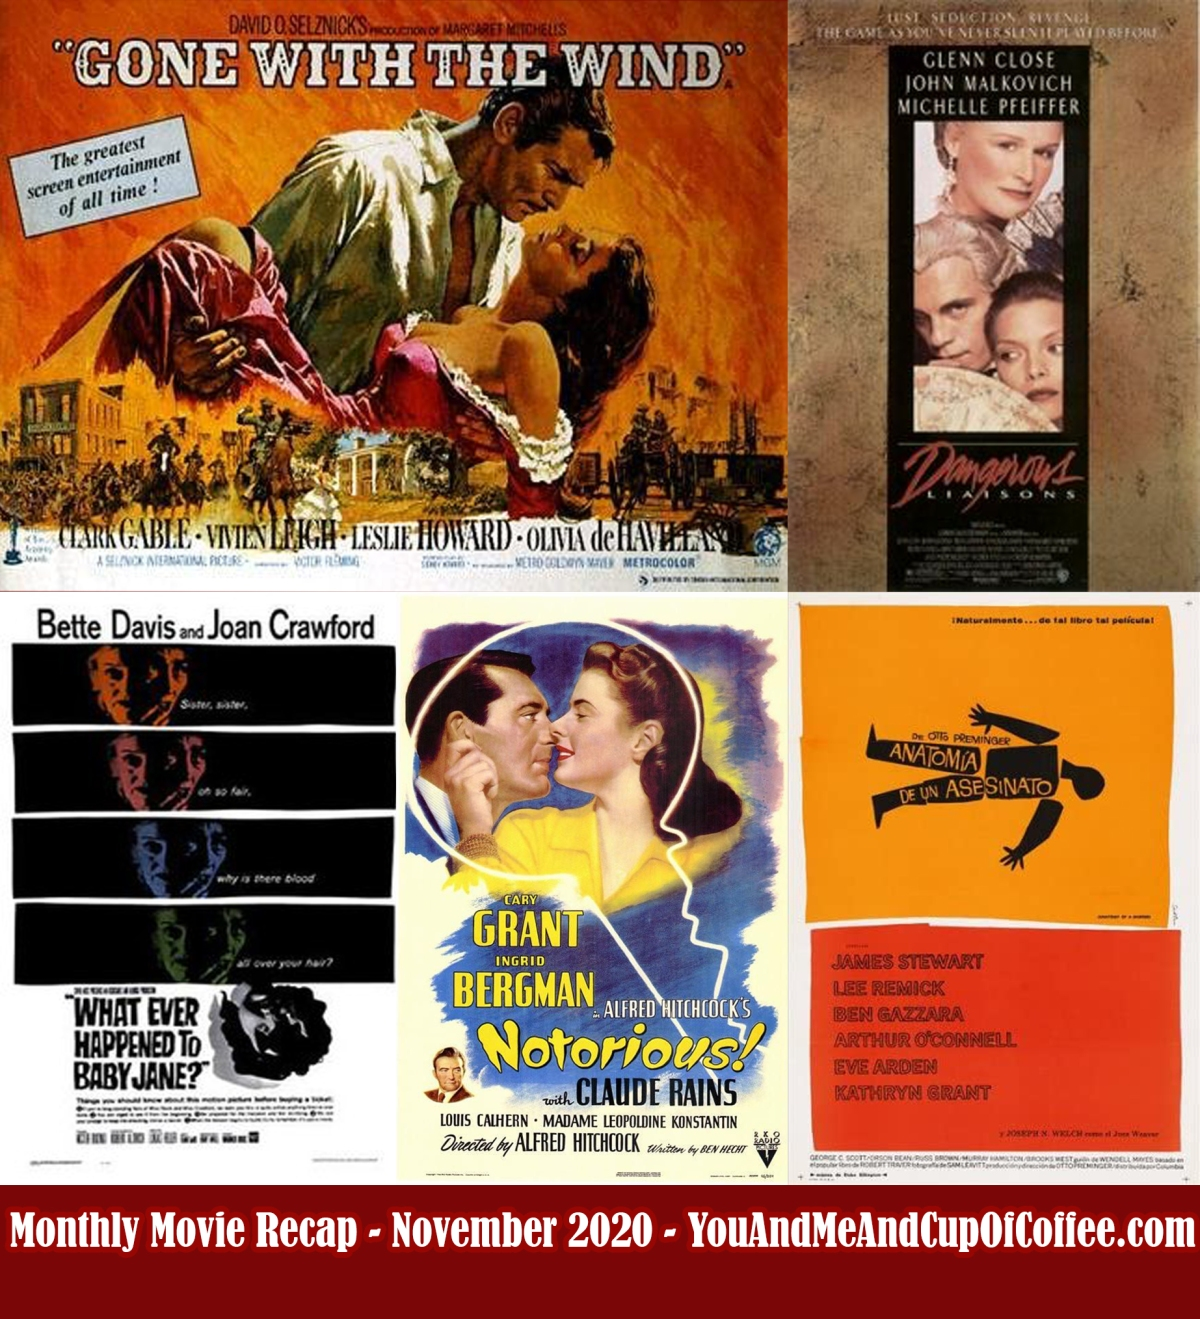 Monthly Movie Recap: November 2020